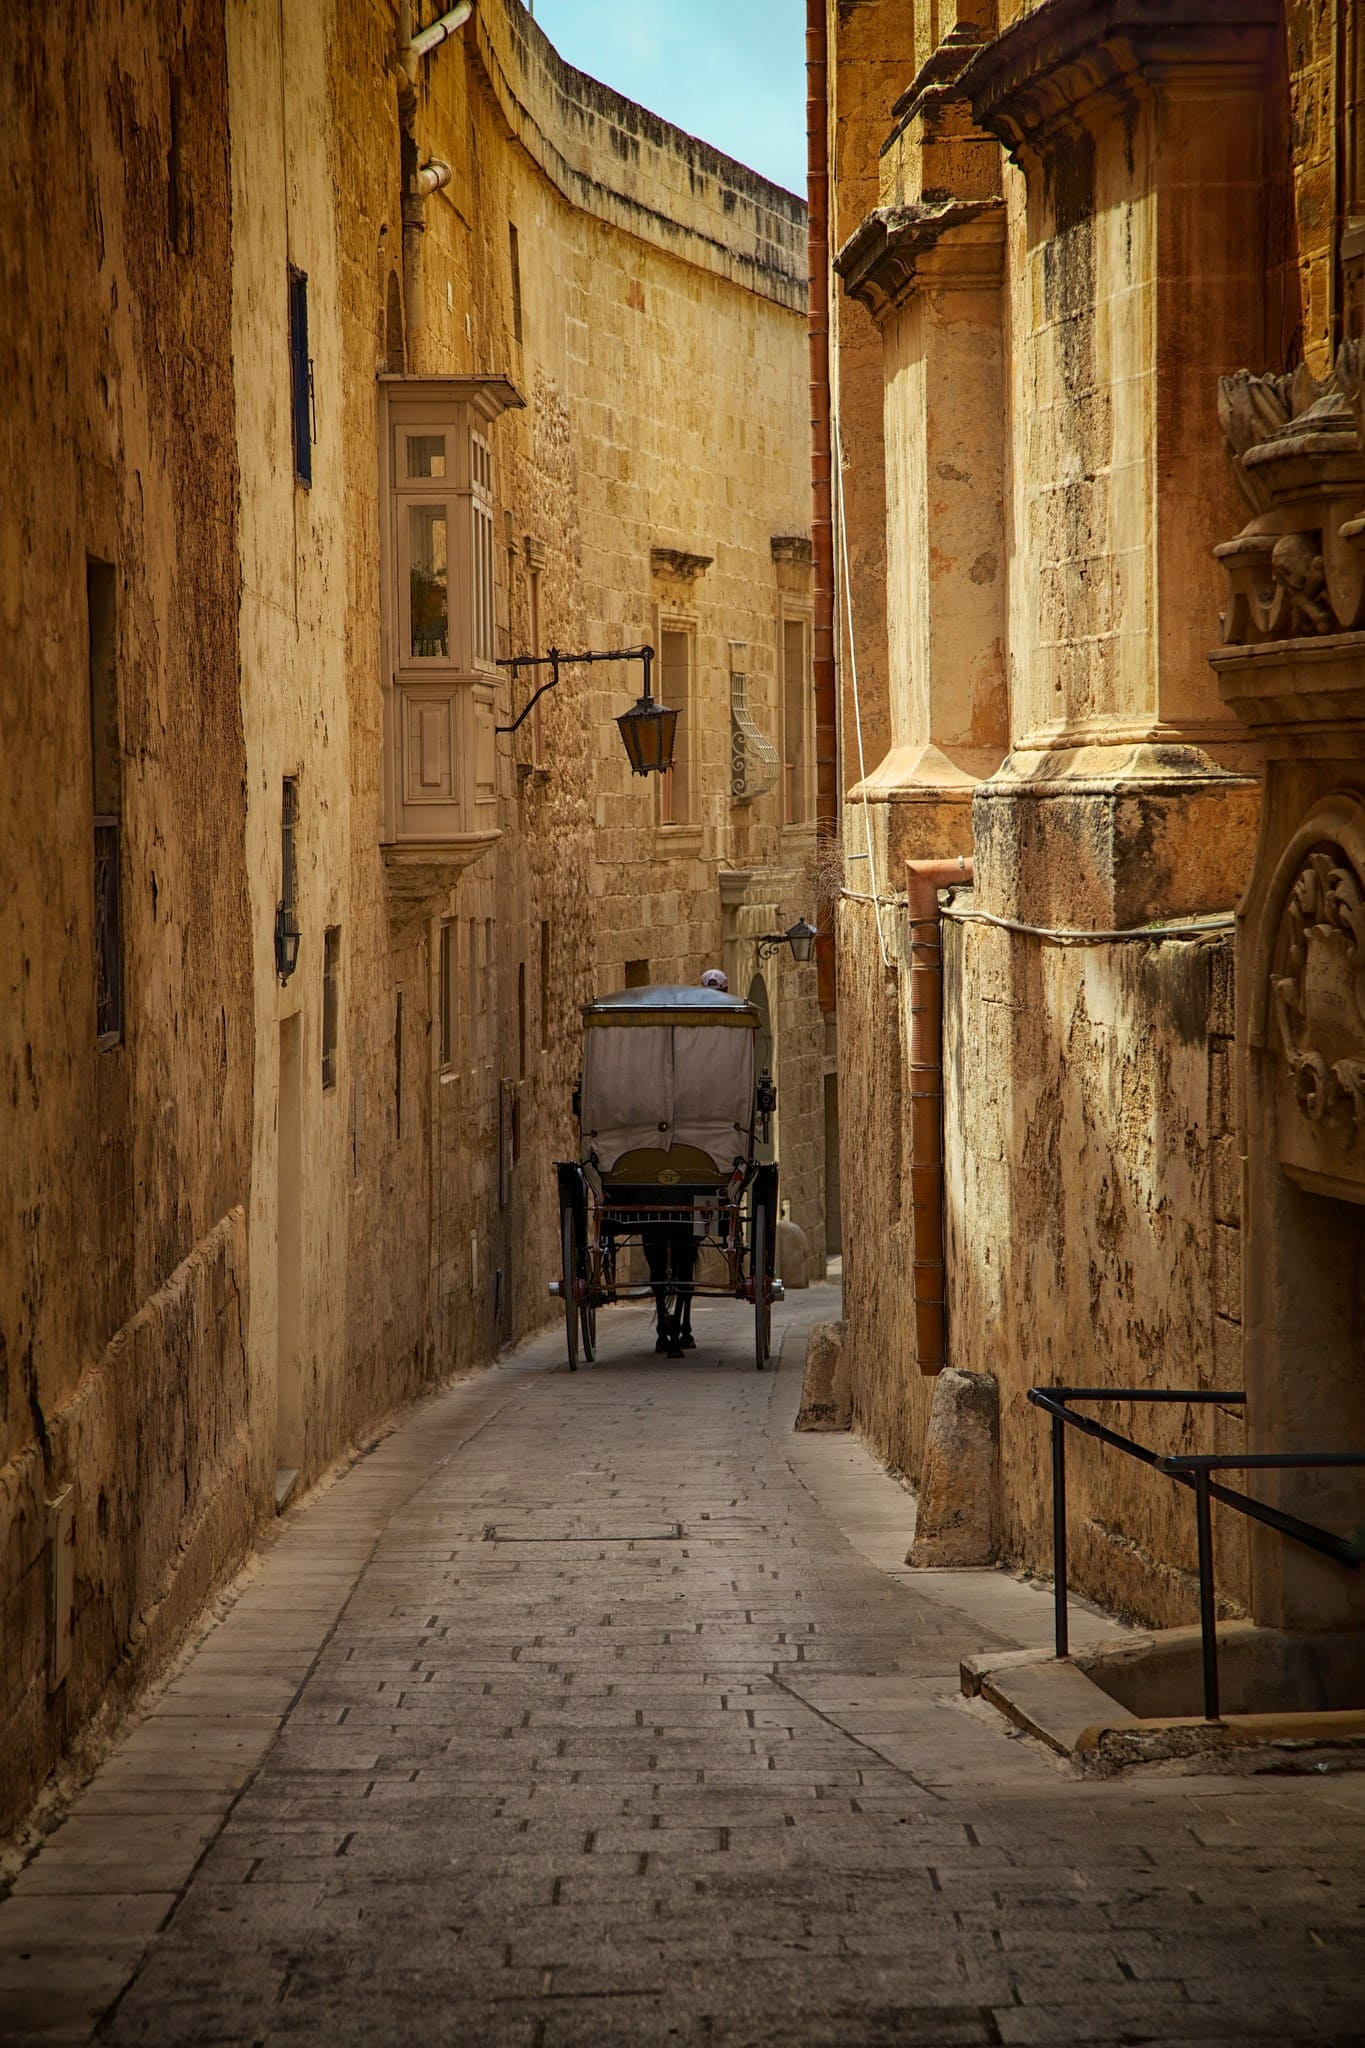 Instagrammable places in Malta, Old city of Mdina